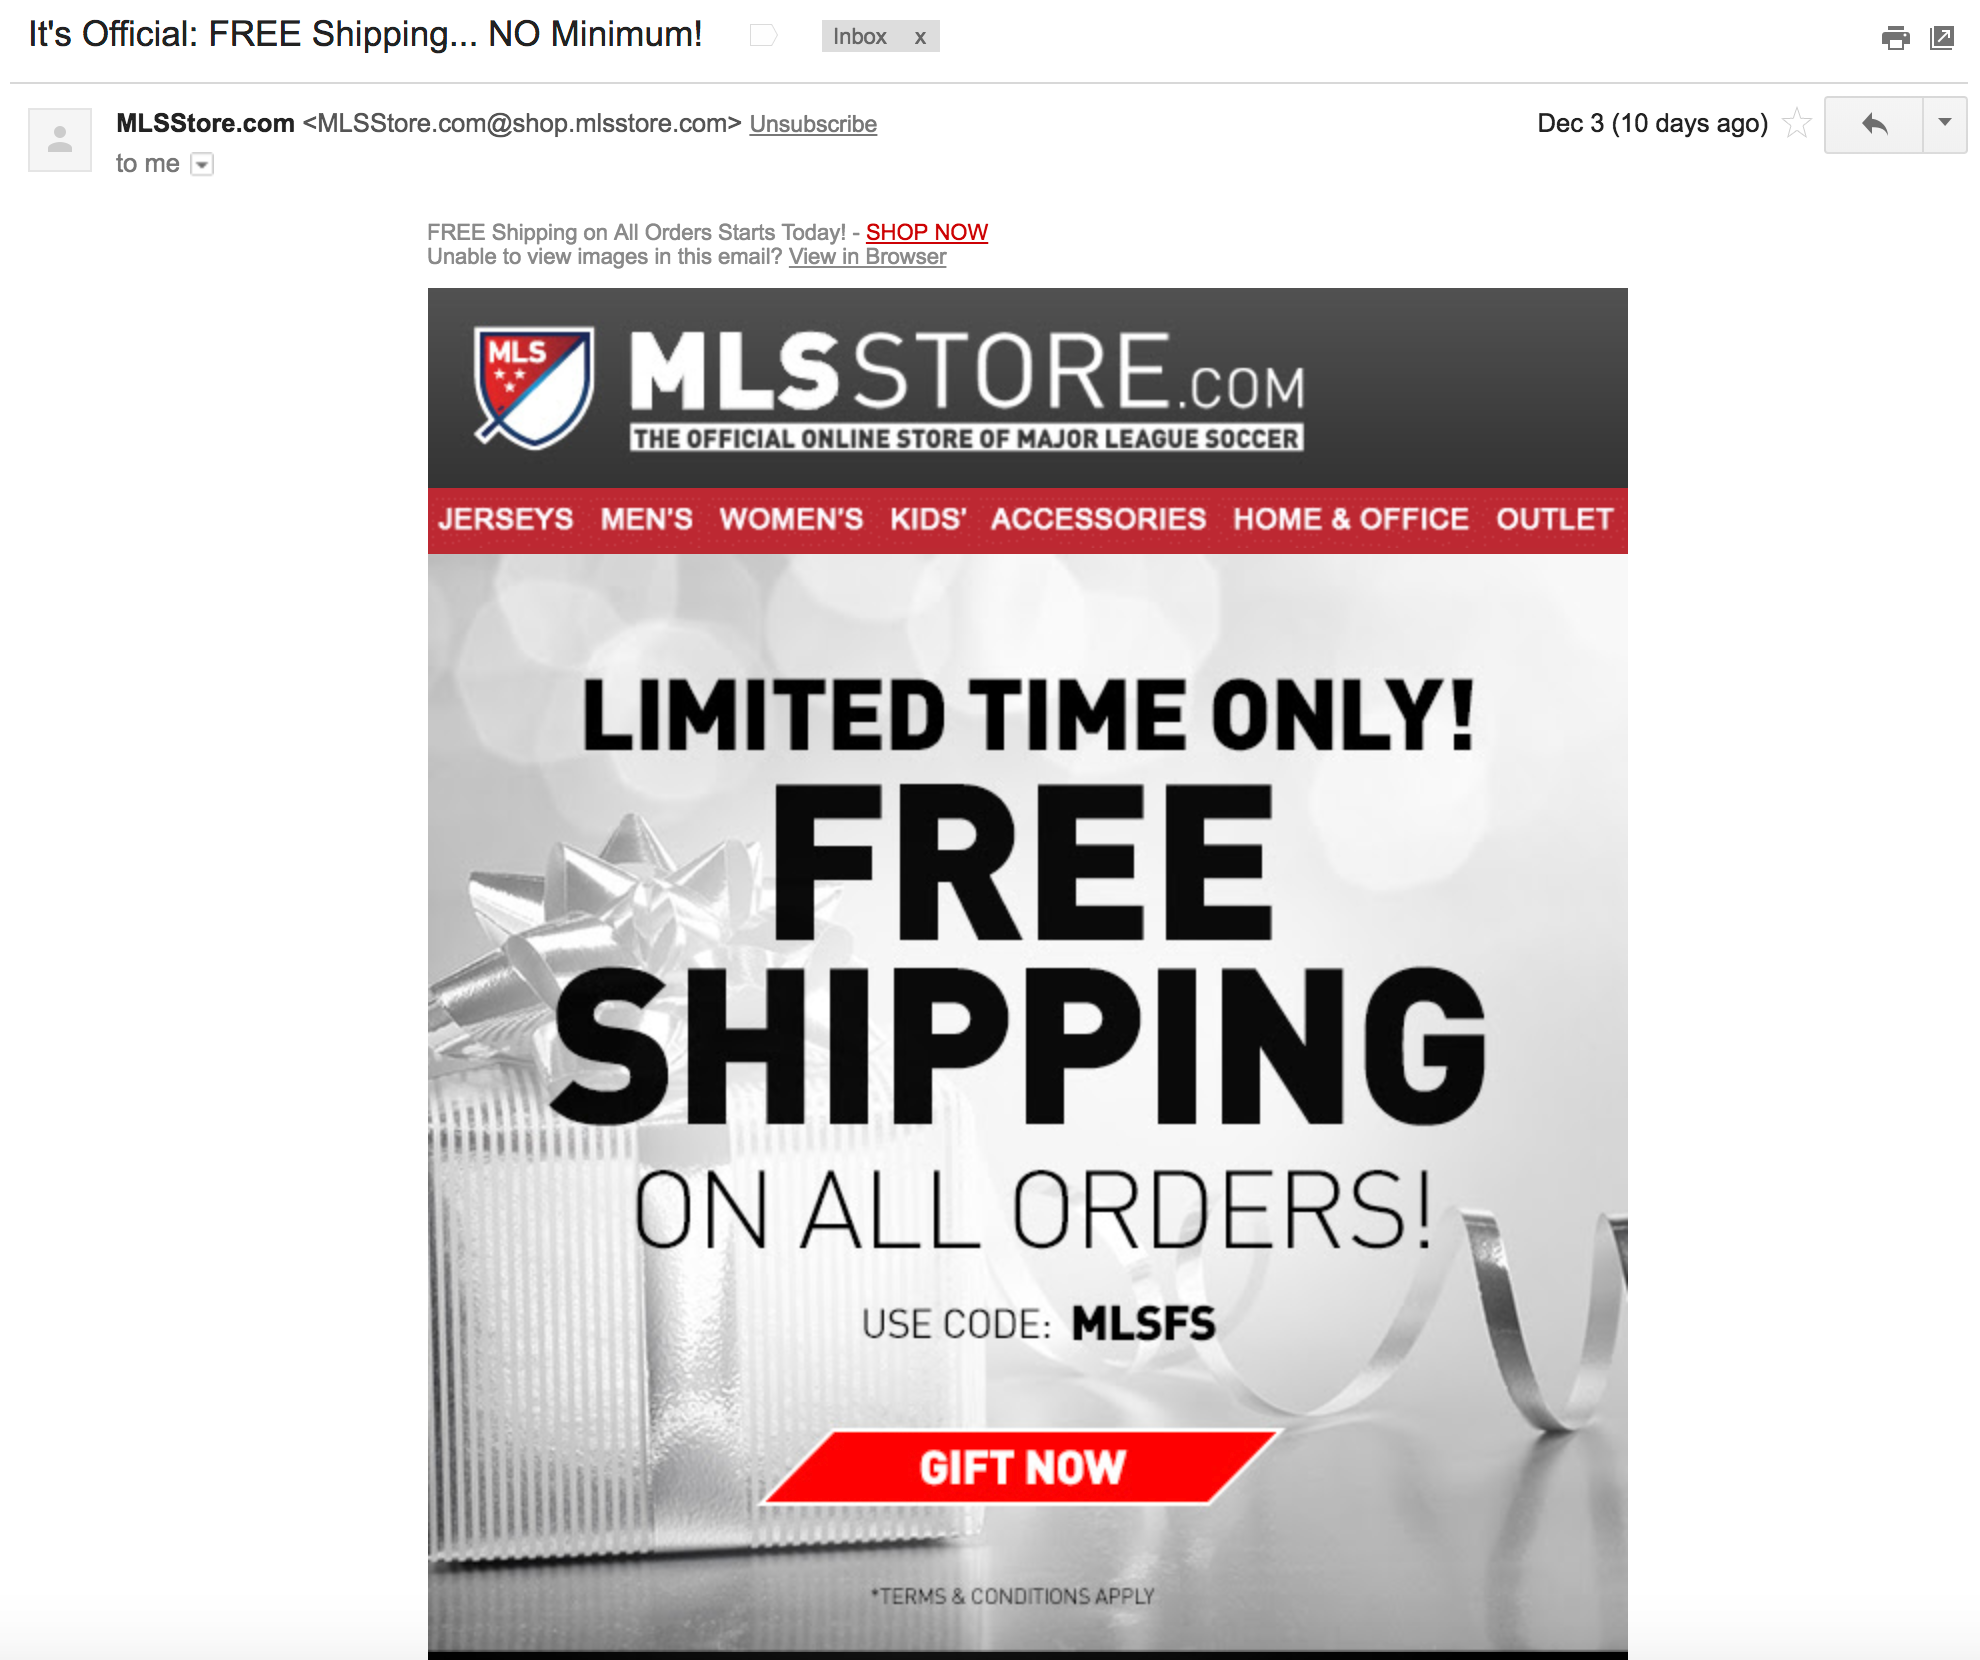 Screenshot showing an email by mlsstore.com